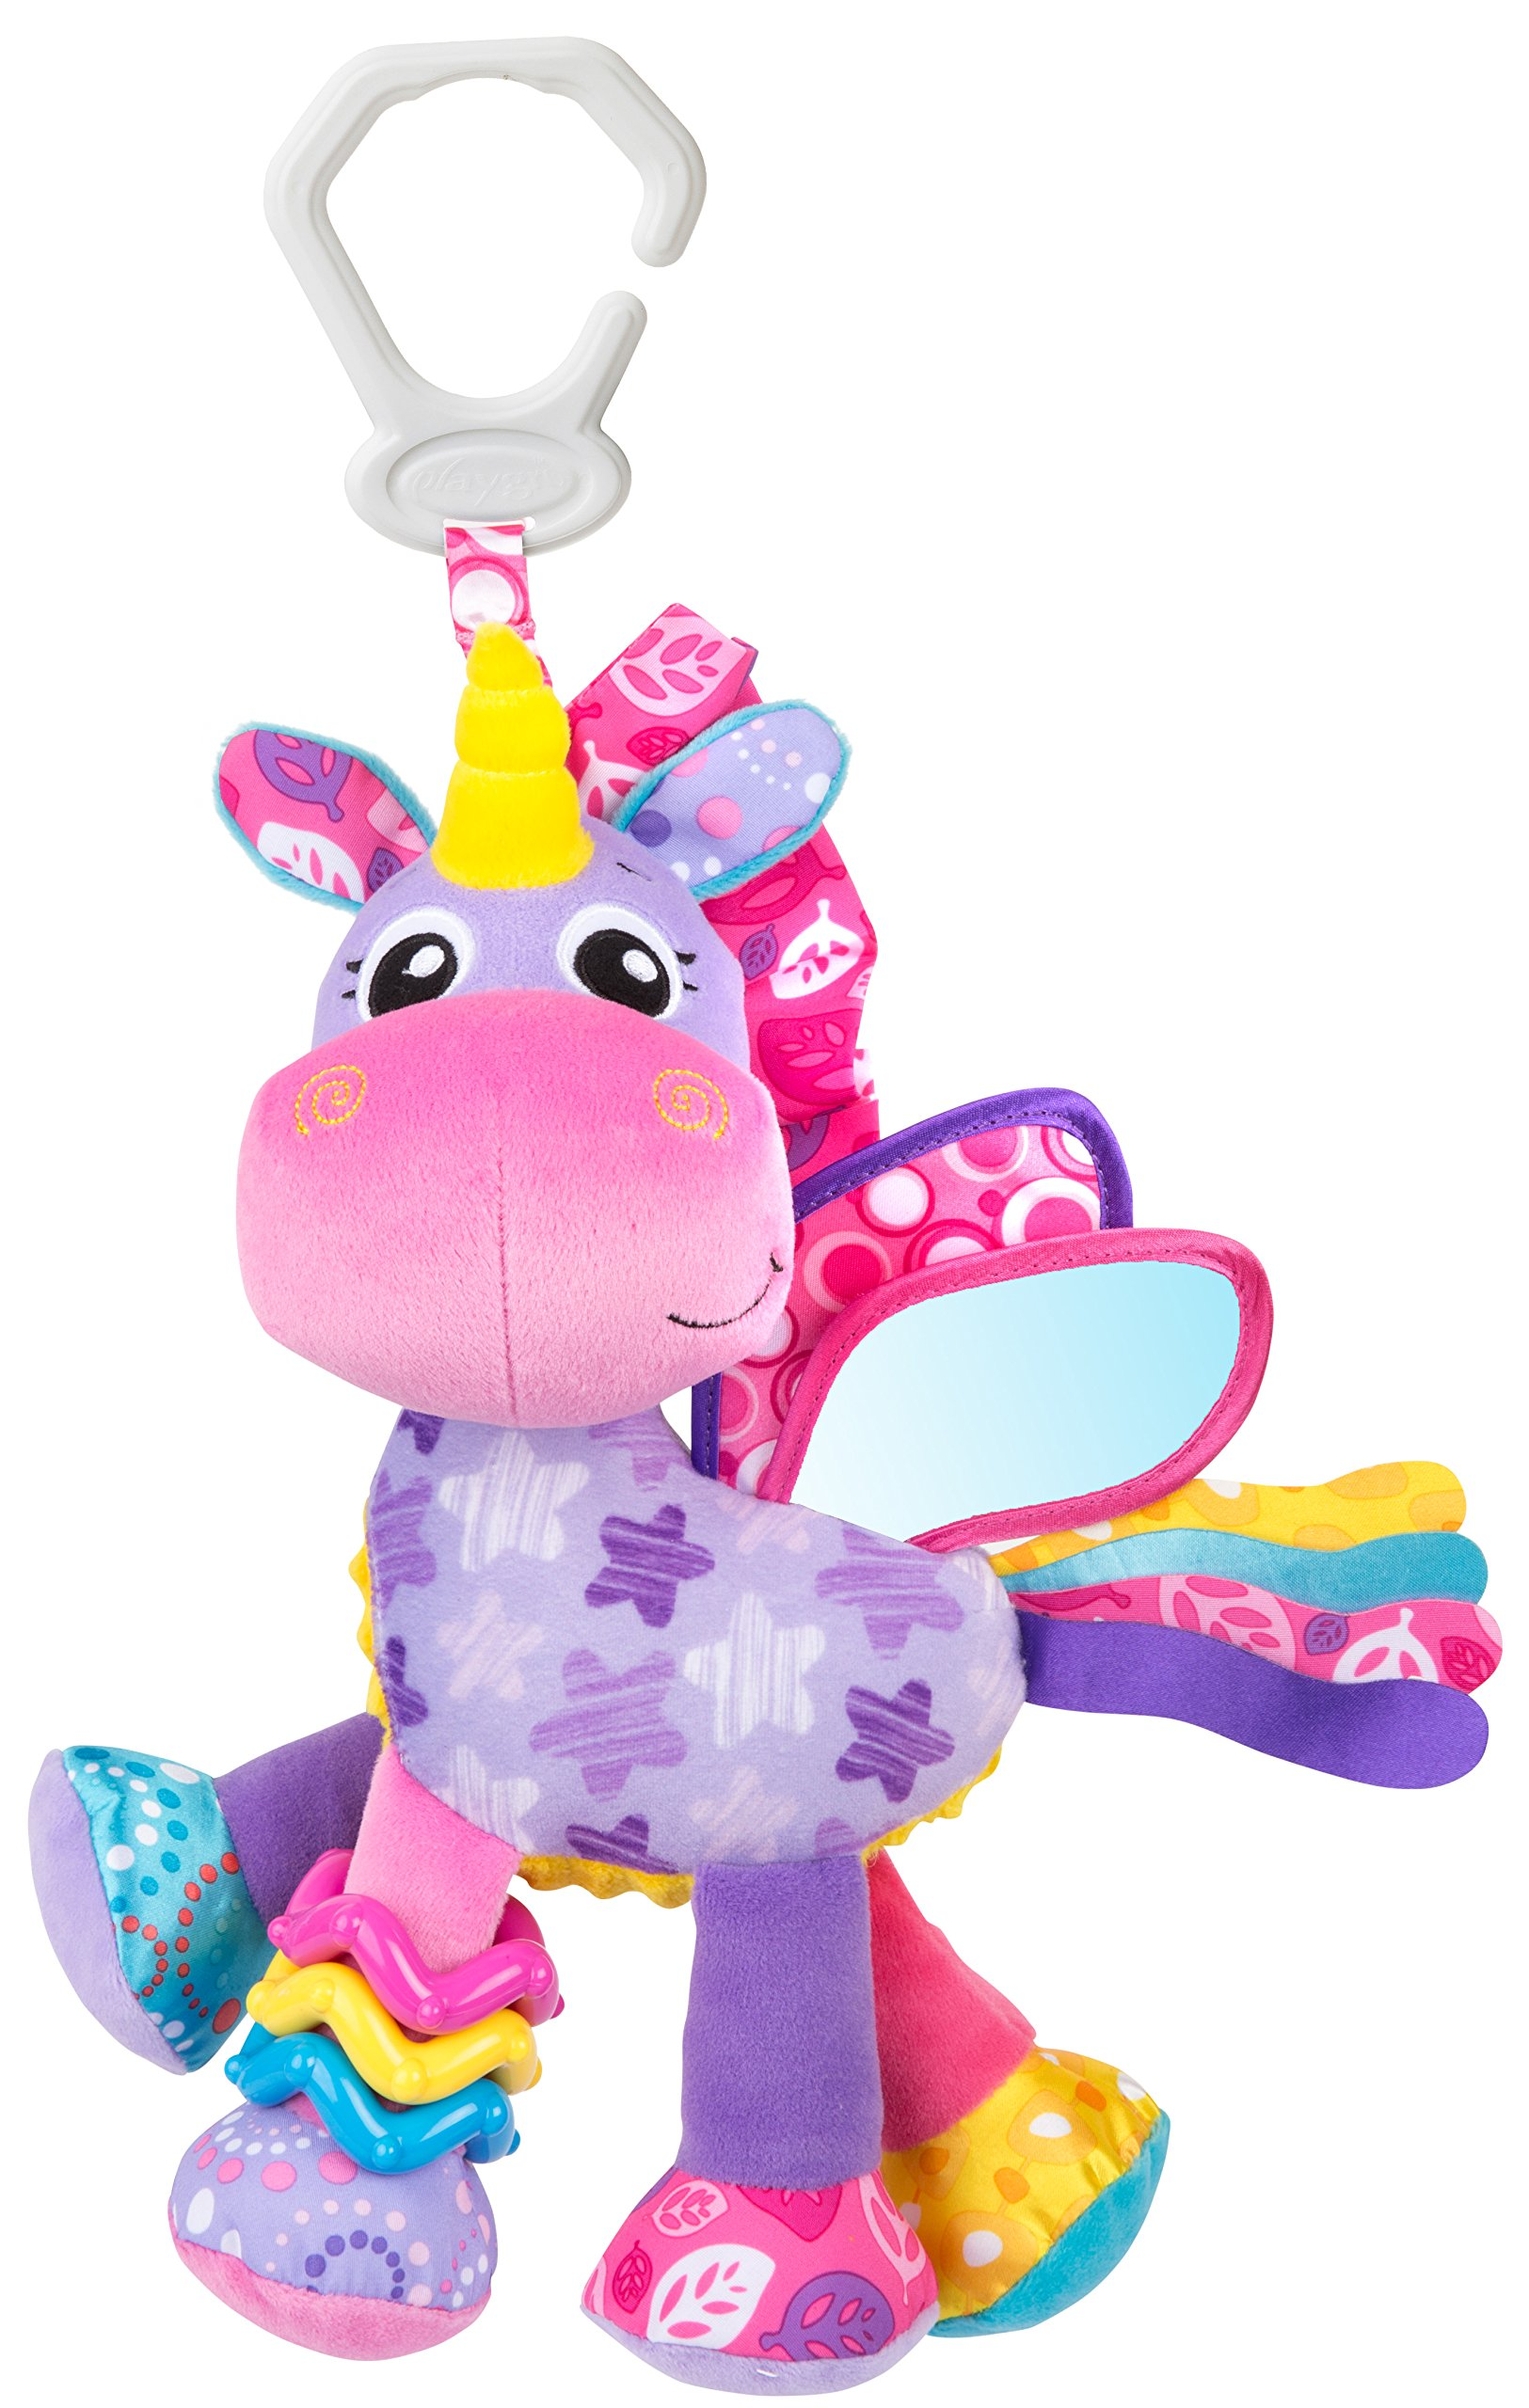 Playgro 0186981 Activity Friend Stella Unicorn 10'' STEM Toy, Multi